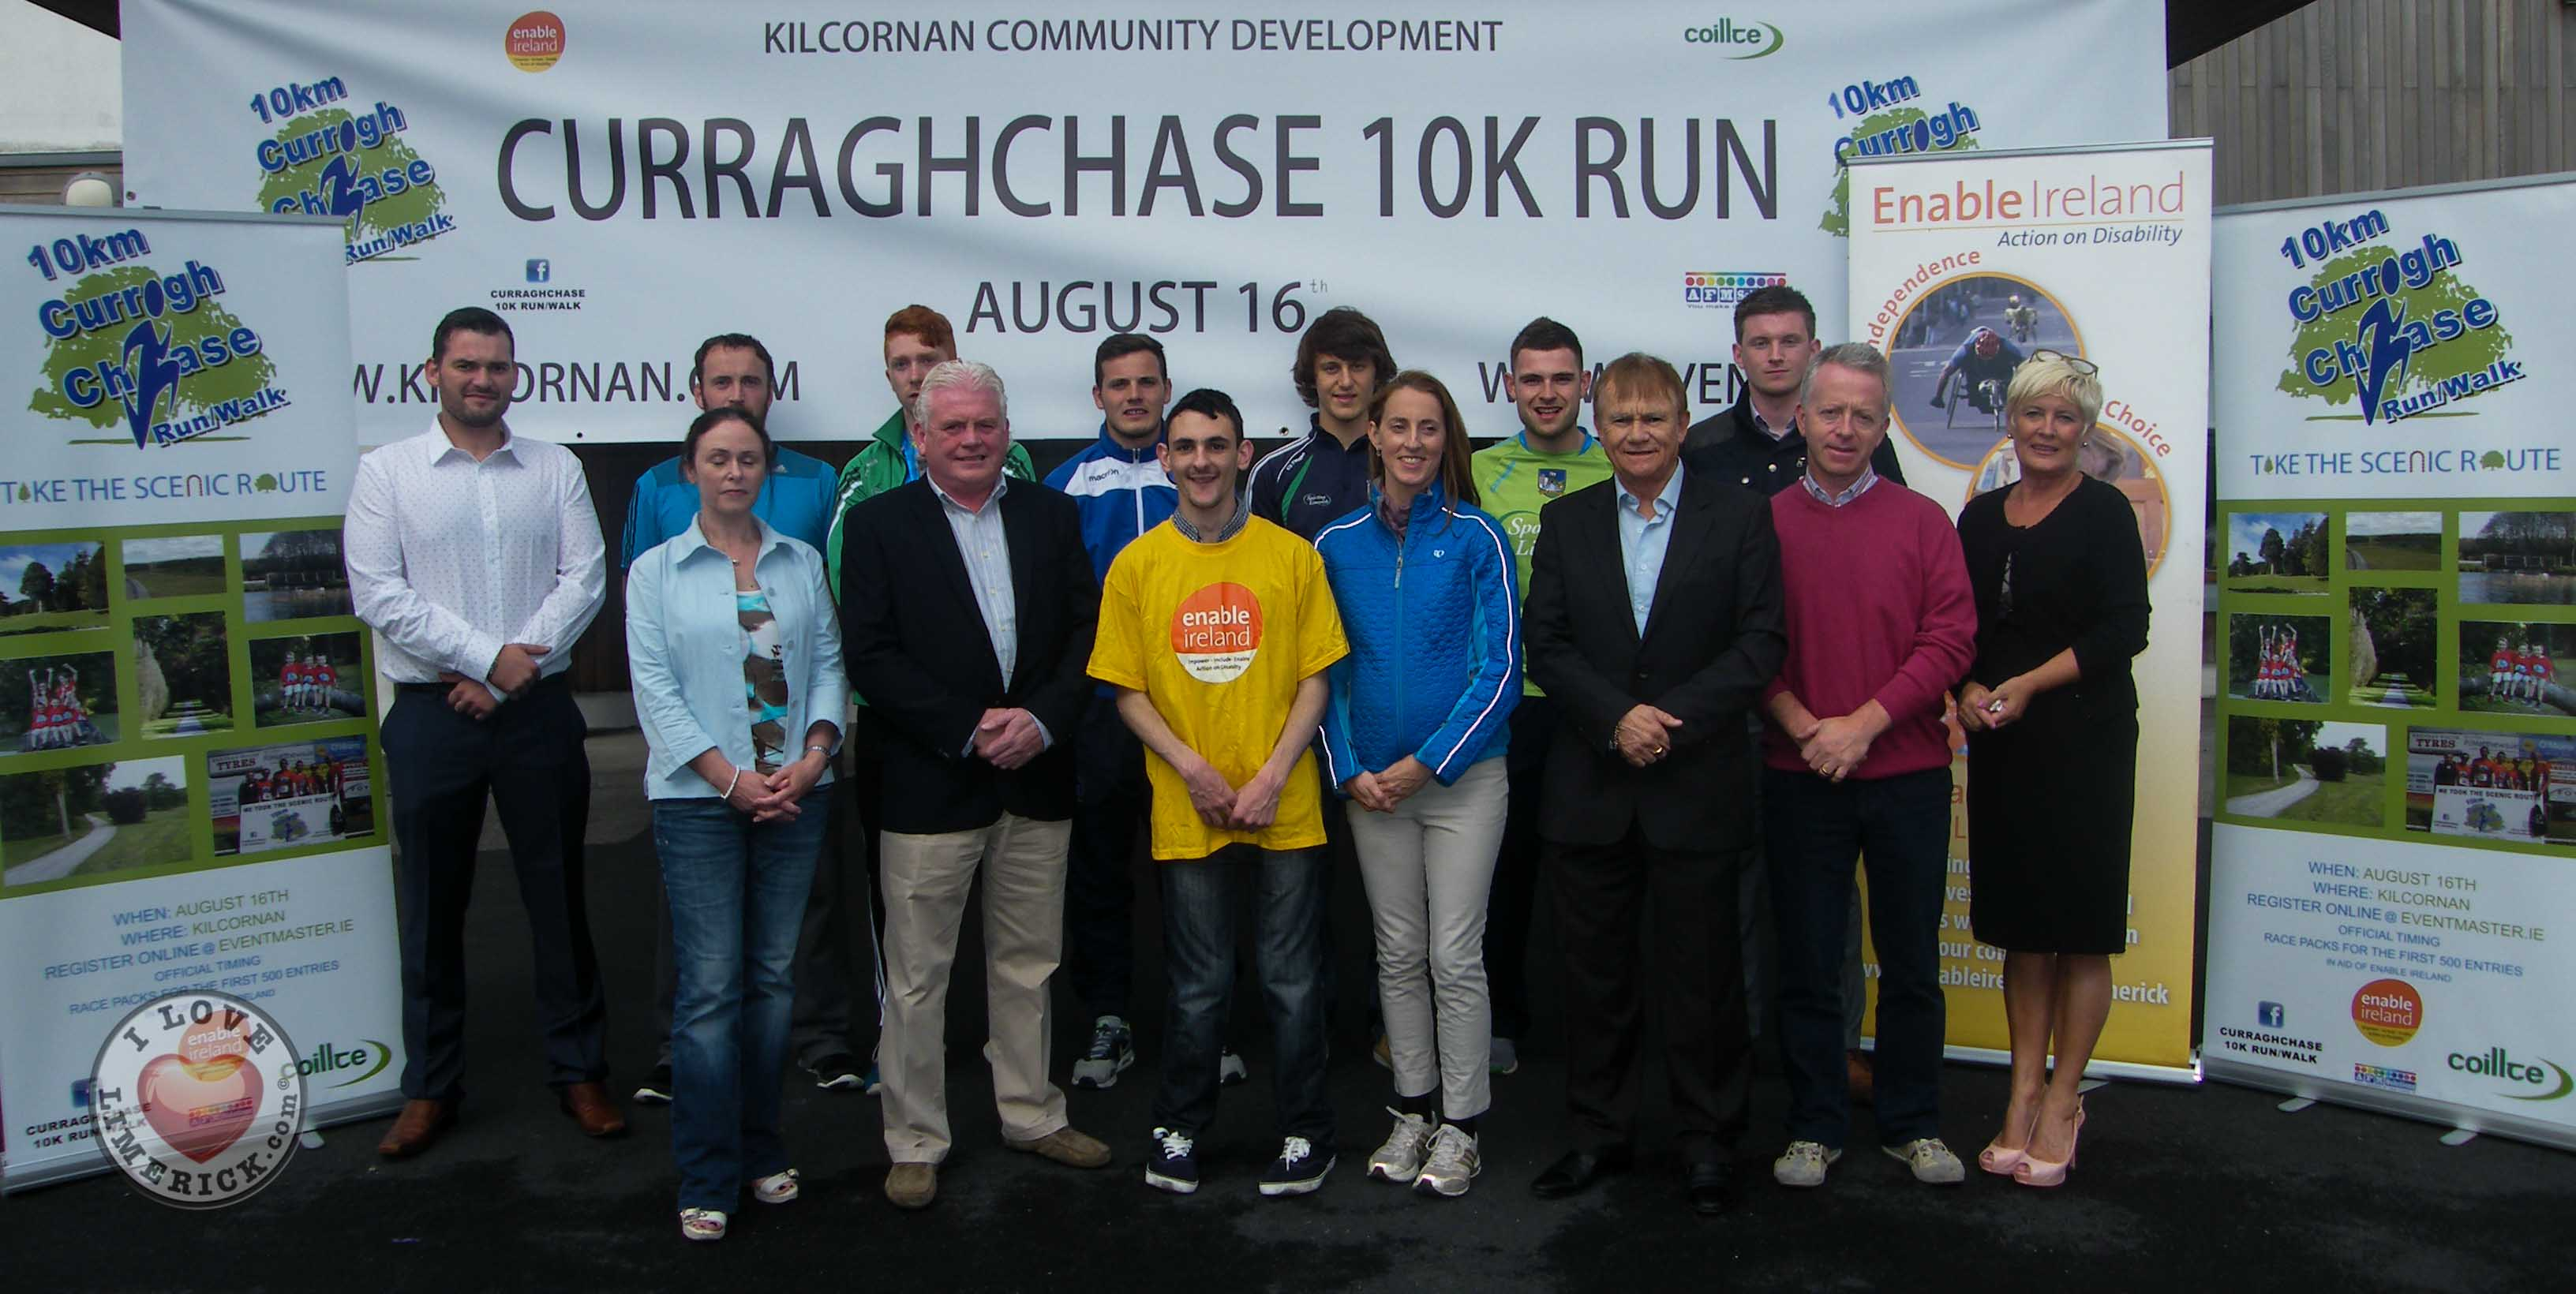 Curraghchase 10k Run for Enable Ireland